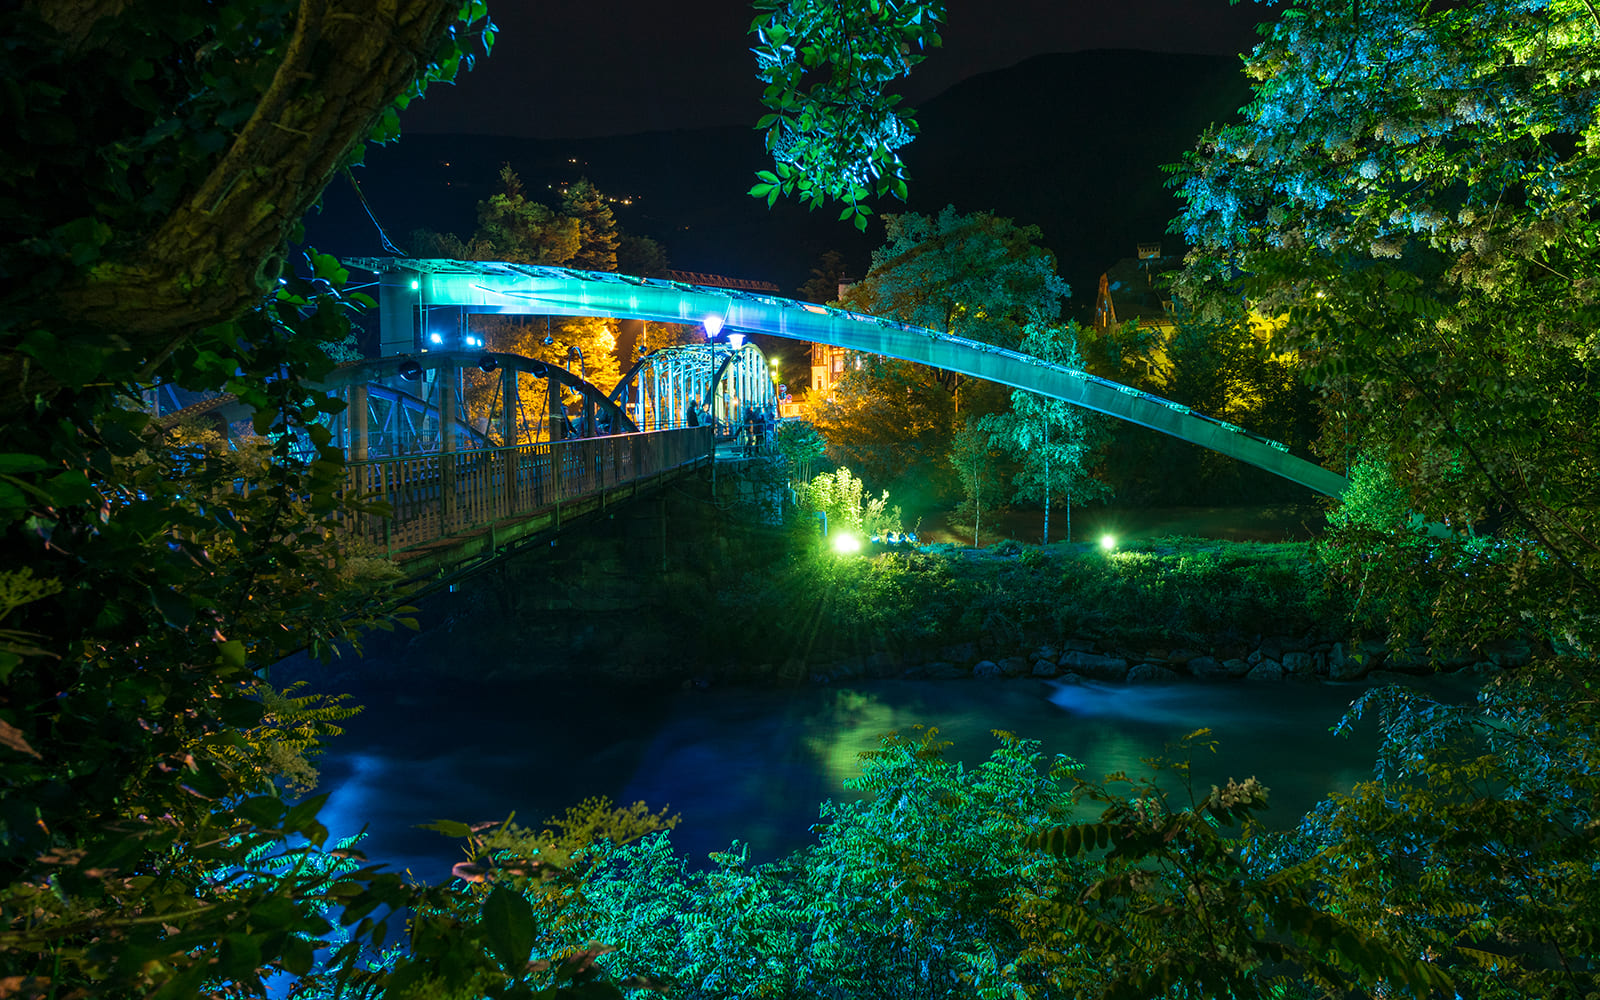 Residence Nives - Waterlight Festival